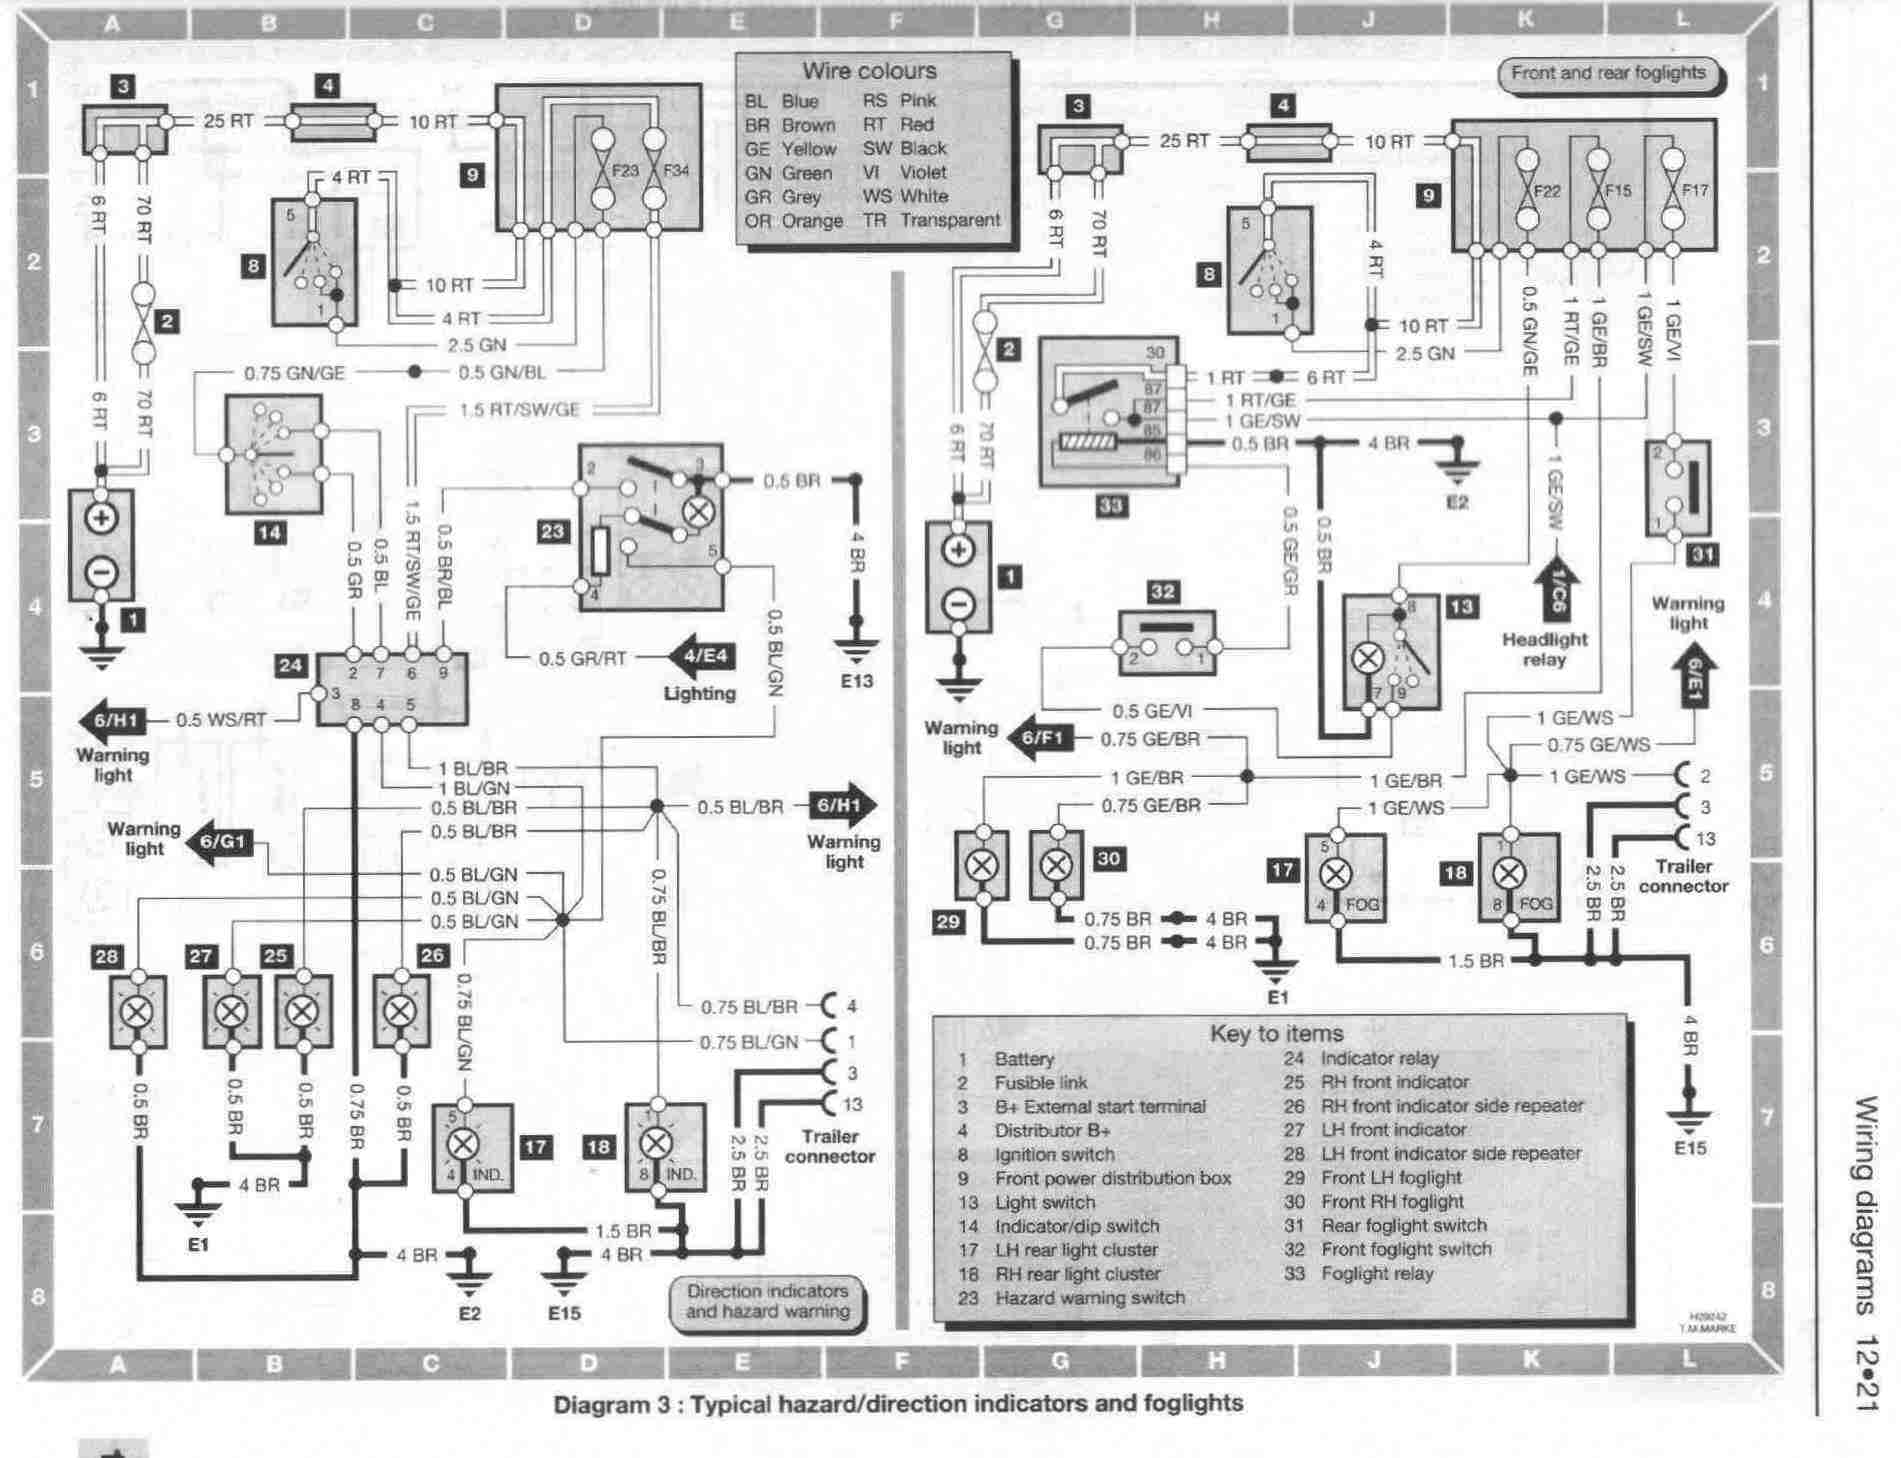 foglamp wiring wiring diagram for international 656 the wiring diagram ih wiring diagrams at edmiracle.co